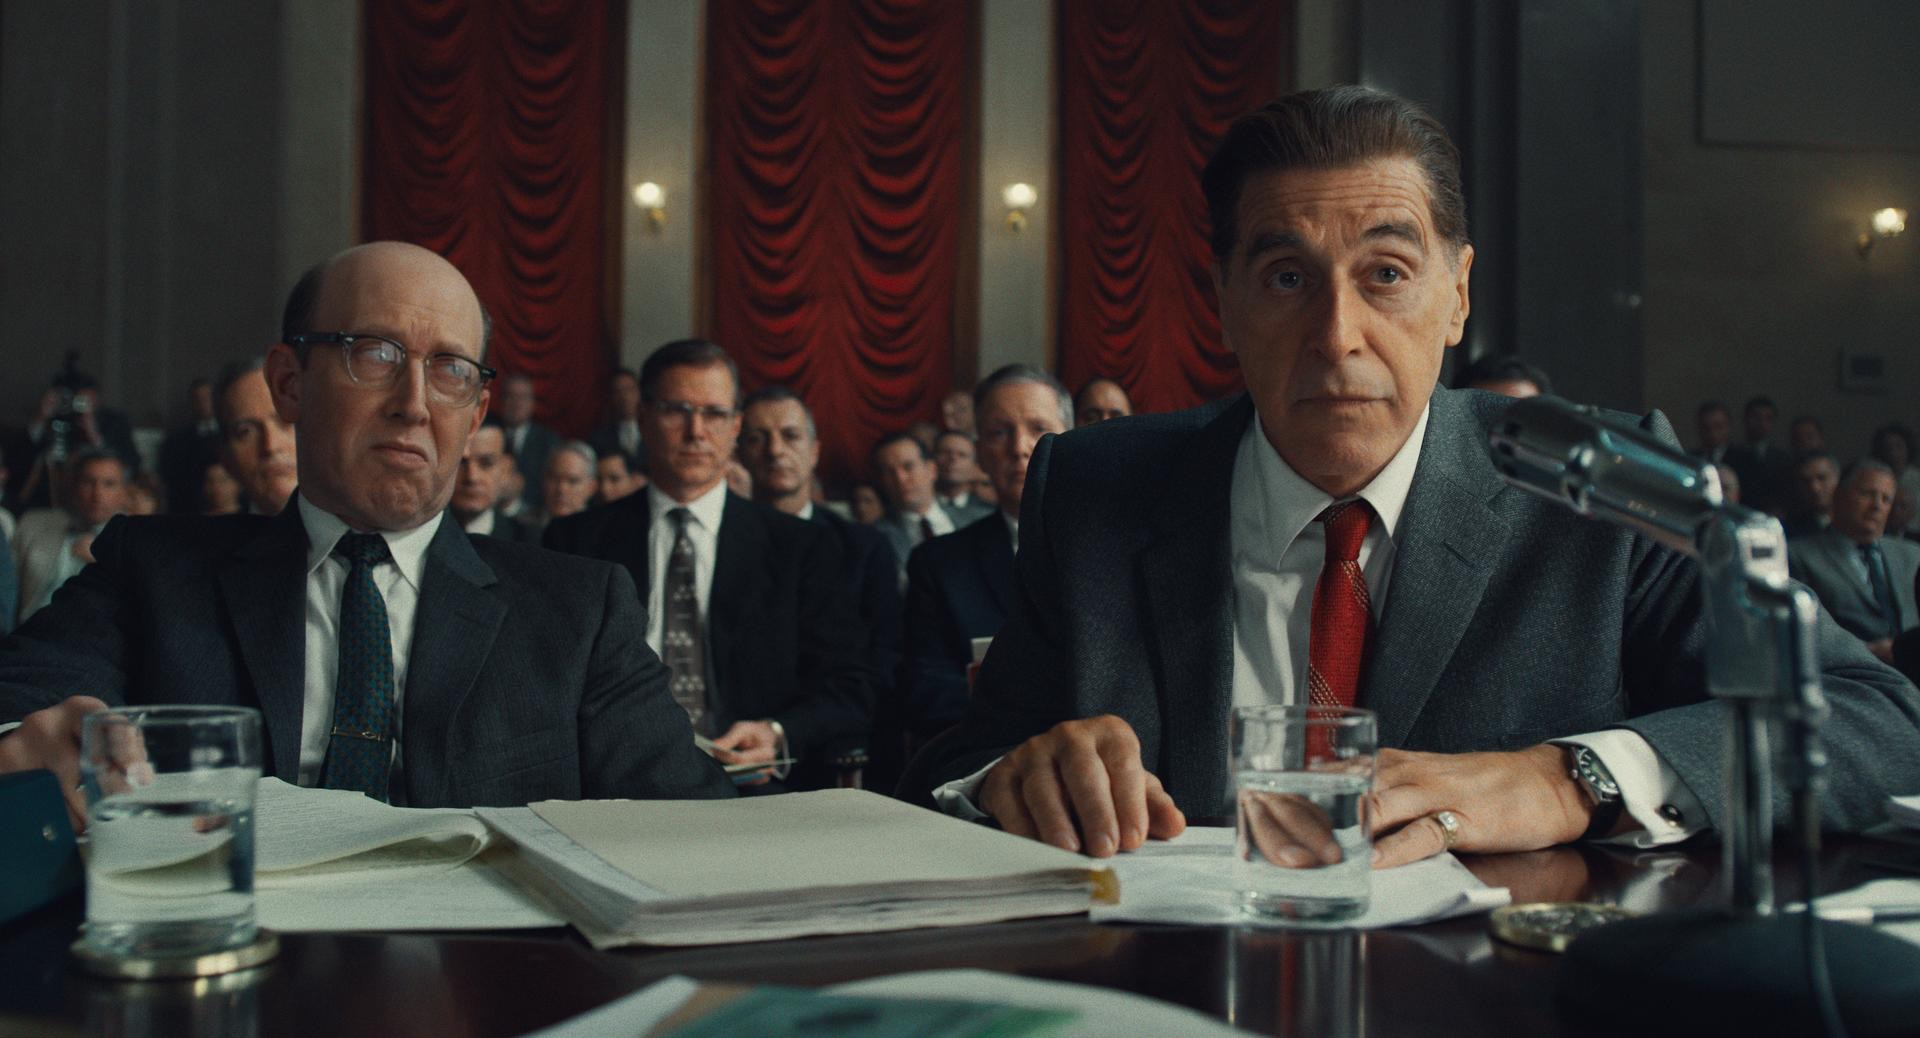 The Irishman: Al Pacino (Jimmy Hoffa) in a courtroom.